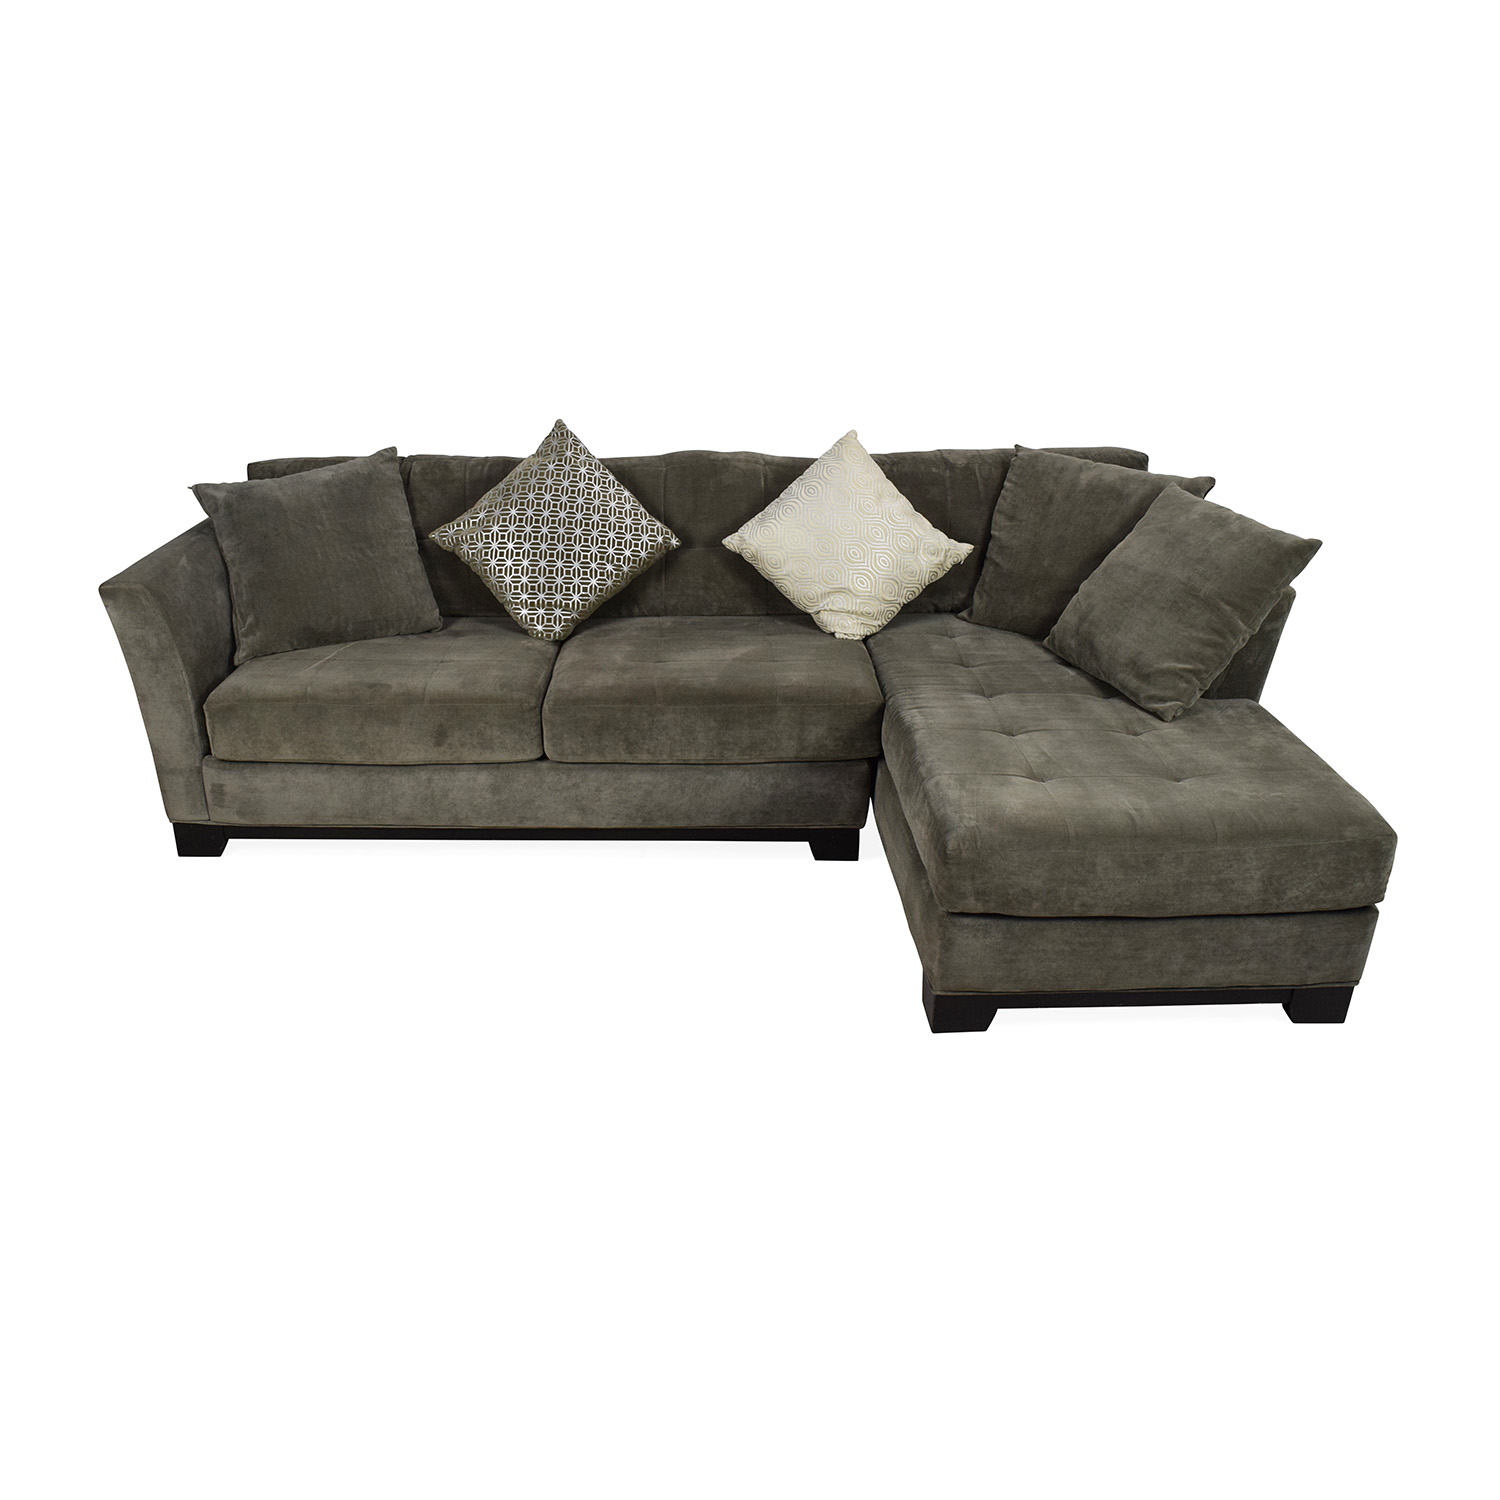 macy sofa sectional unique bed s elliot couch new beds hd